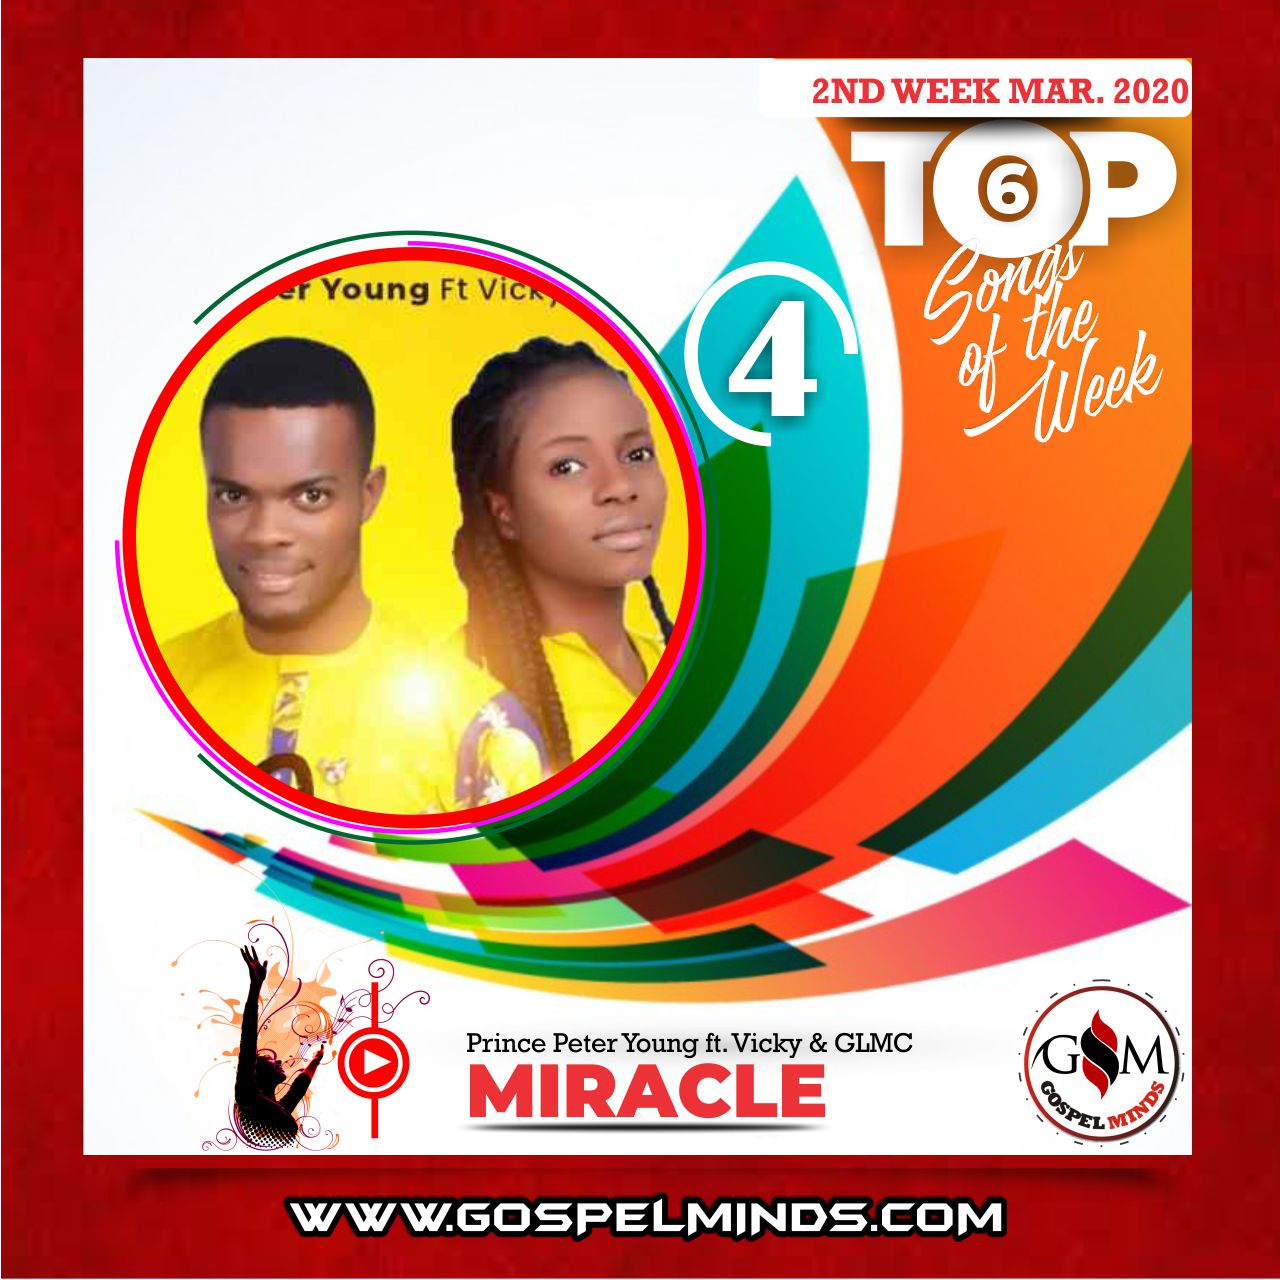 March 2nd Week 'Top 6 Gospel Songs Of The Week' Prince Peter Young - Miracle ft. Vicky & GLMC